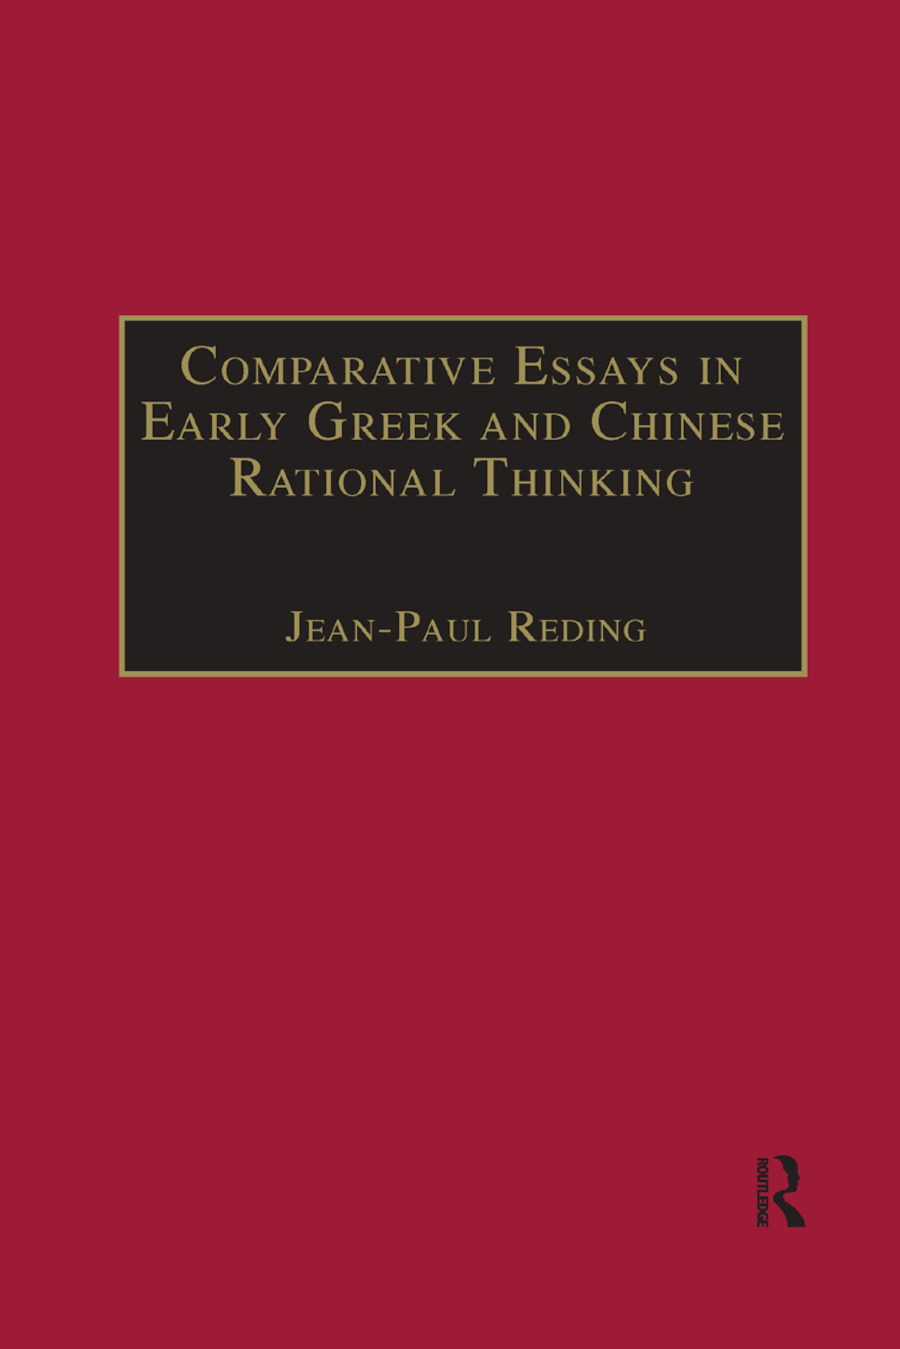 Comparative Essays in Early Greek and Chinese Rational Thinking: 1st Edition (Paperback) book cover